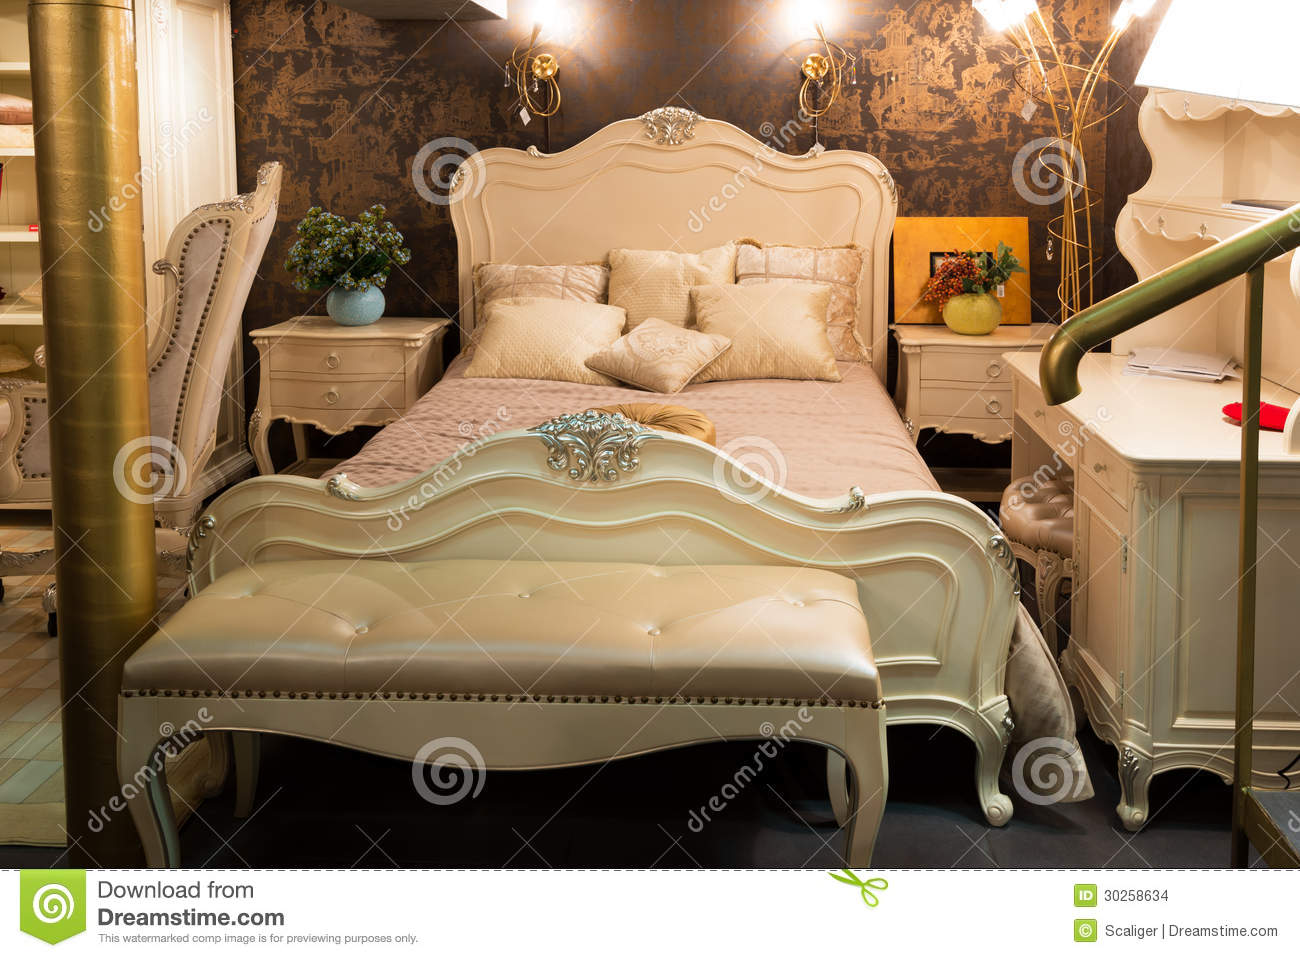 Bedroom In A Furniture Store Stock Images - Image: 30258634